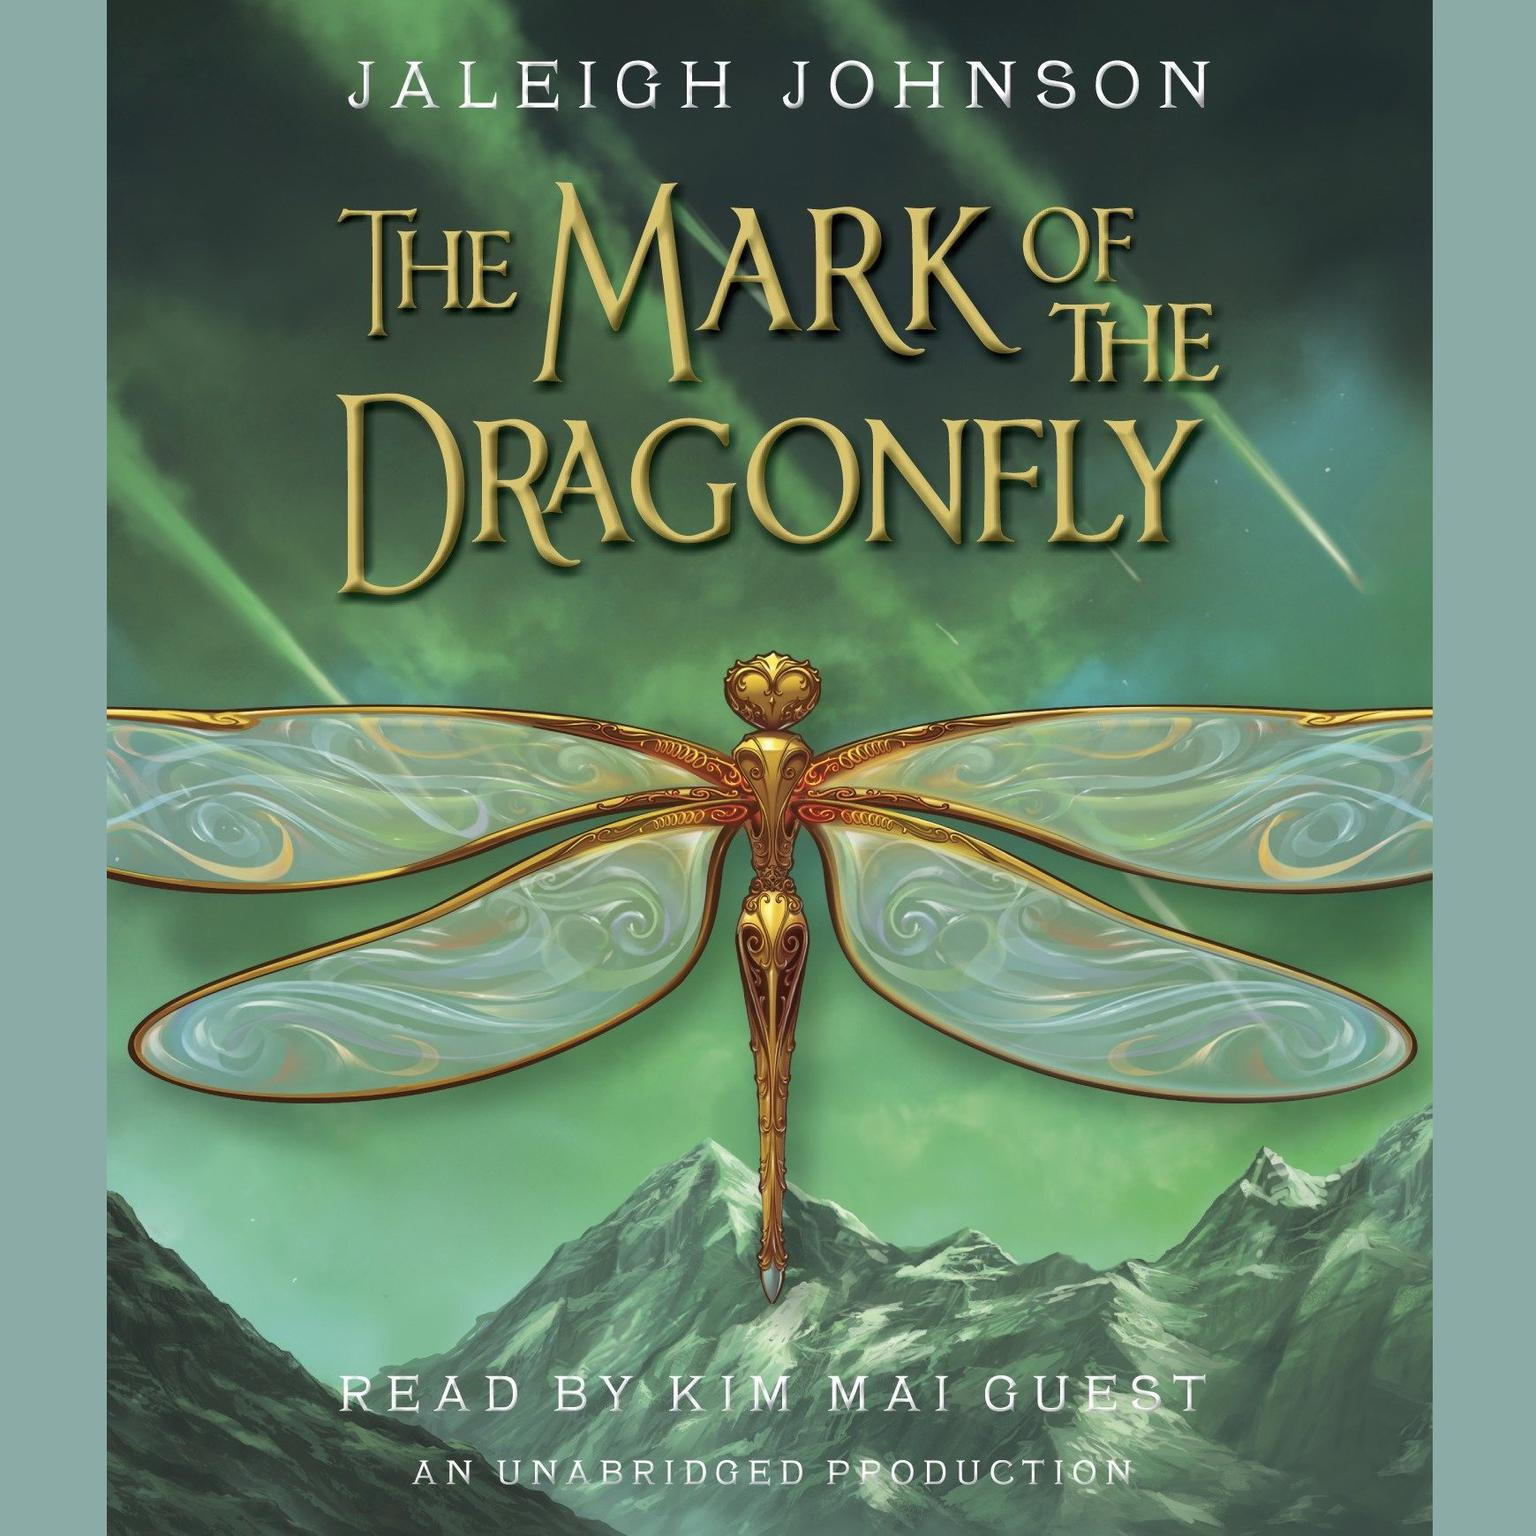 Printable The Mark of the Dragonfly Audiobook Cover Art